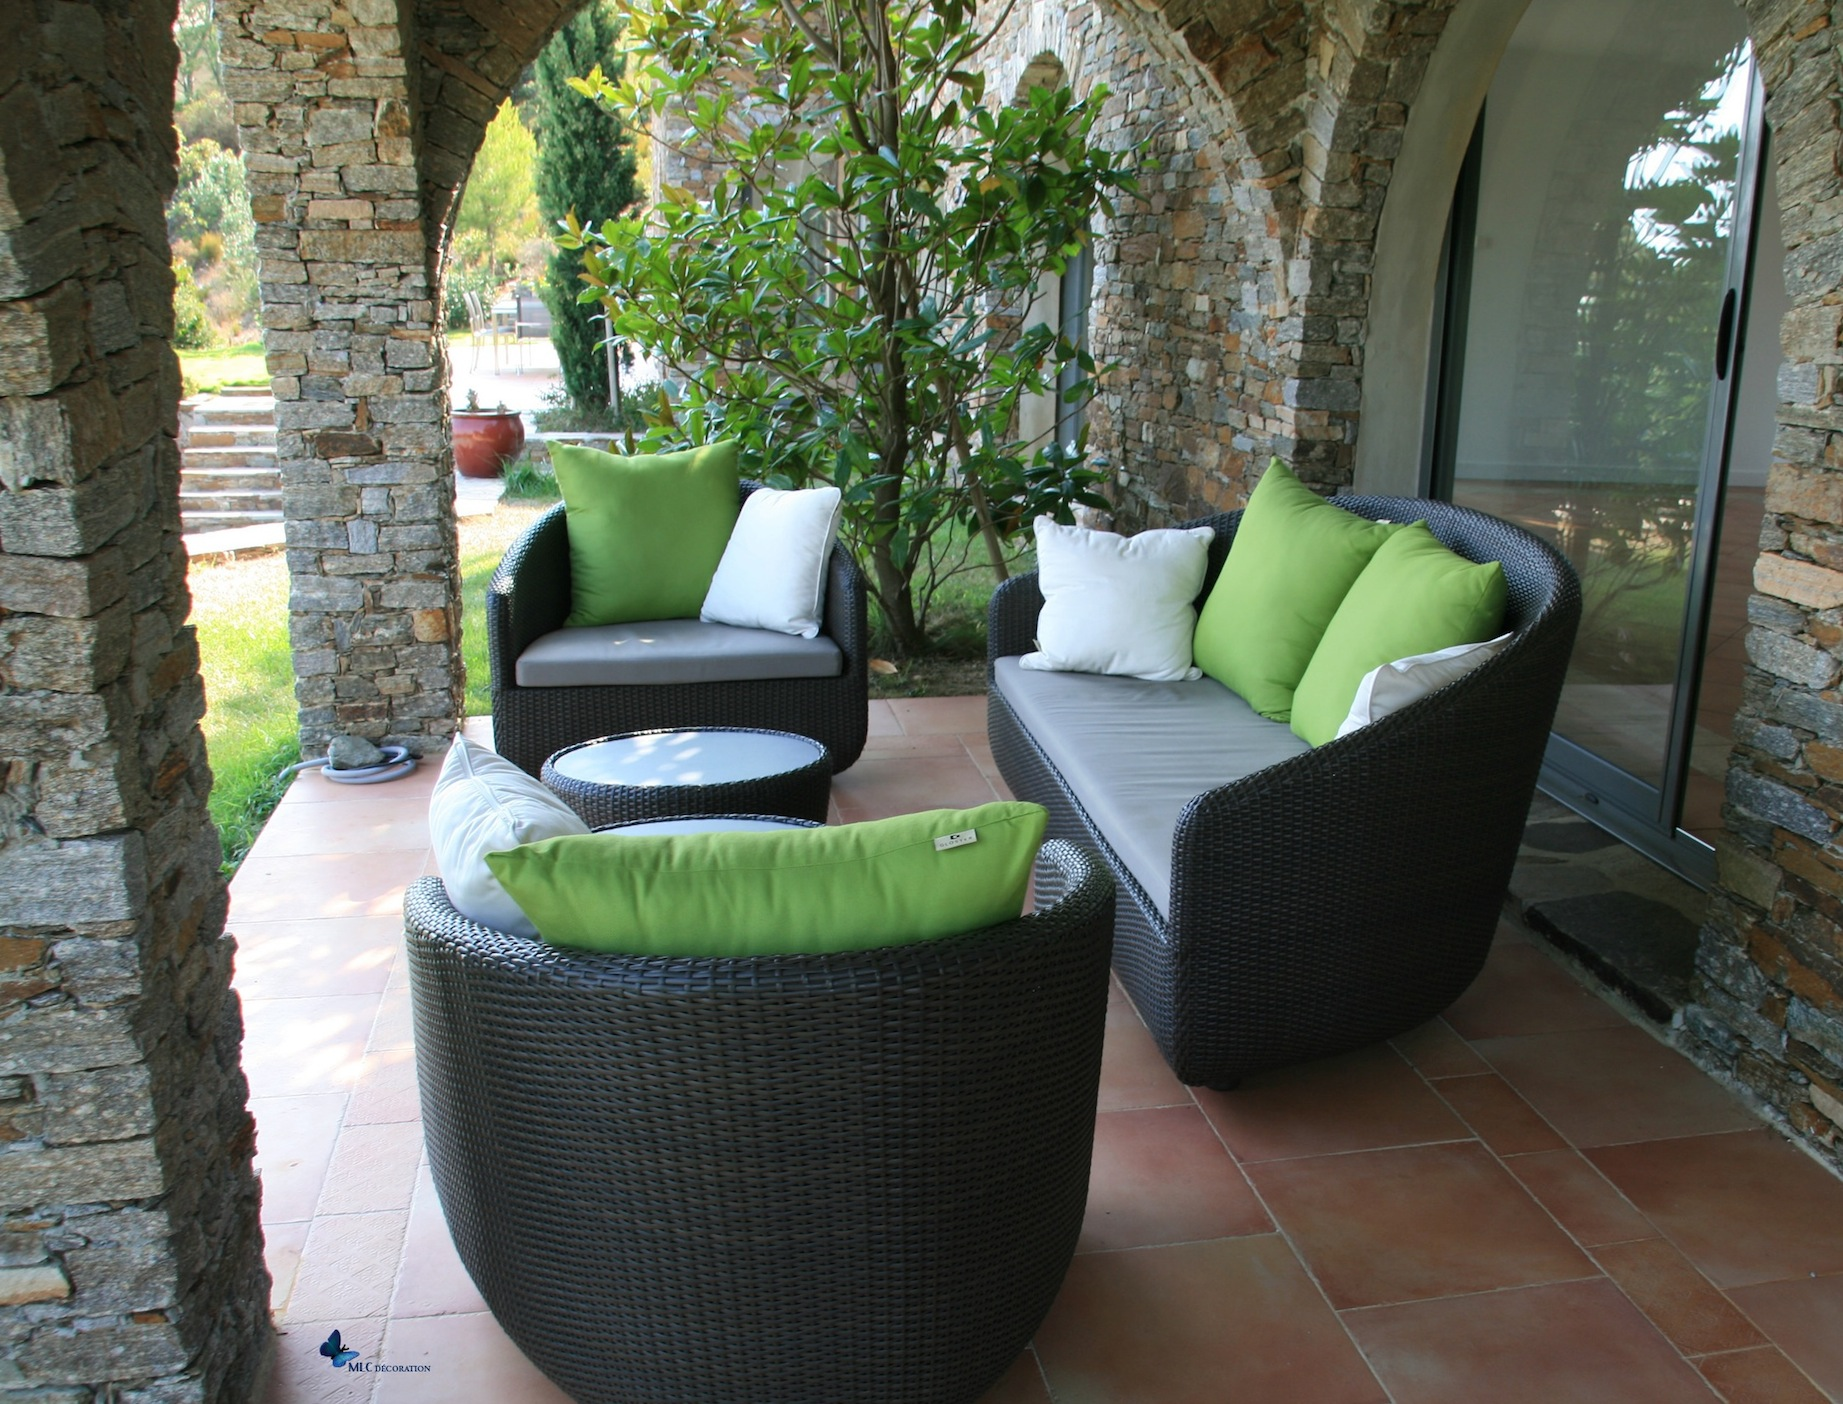 Canap ext rieur design archives le blog d co de mlc for Deco exterieur jardin design